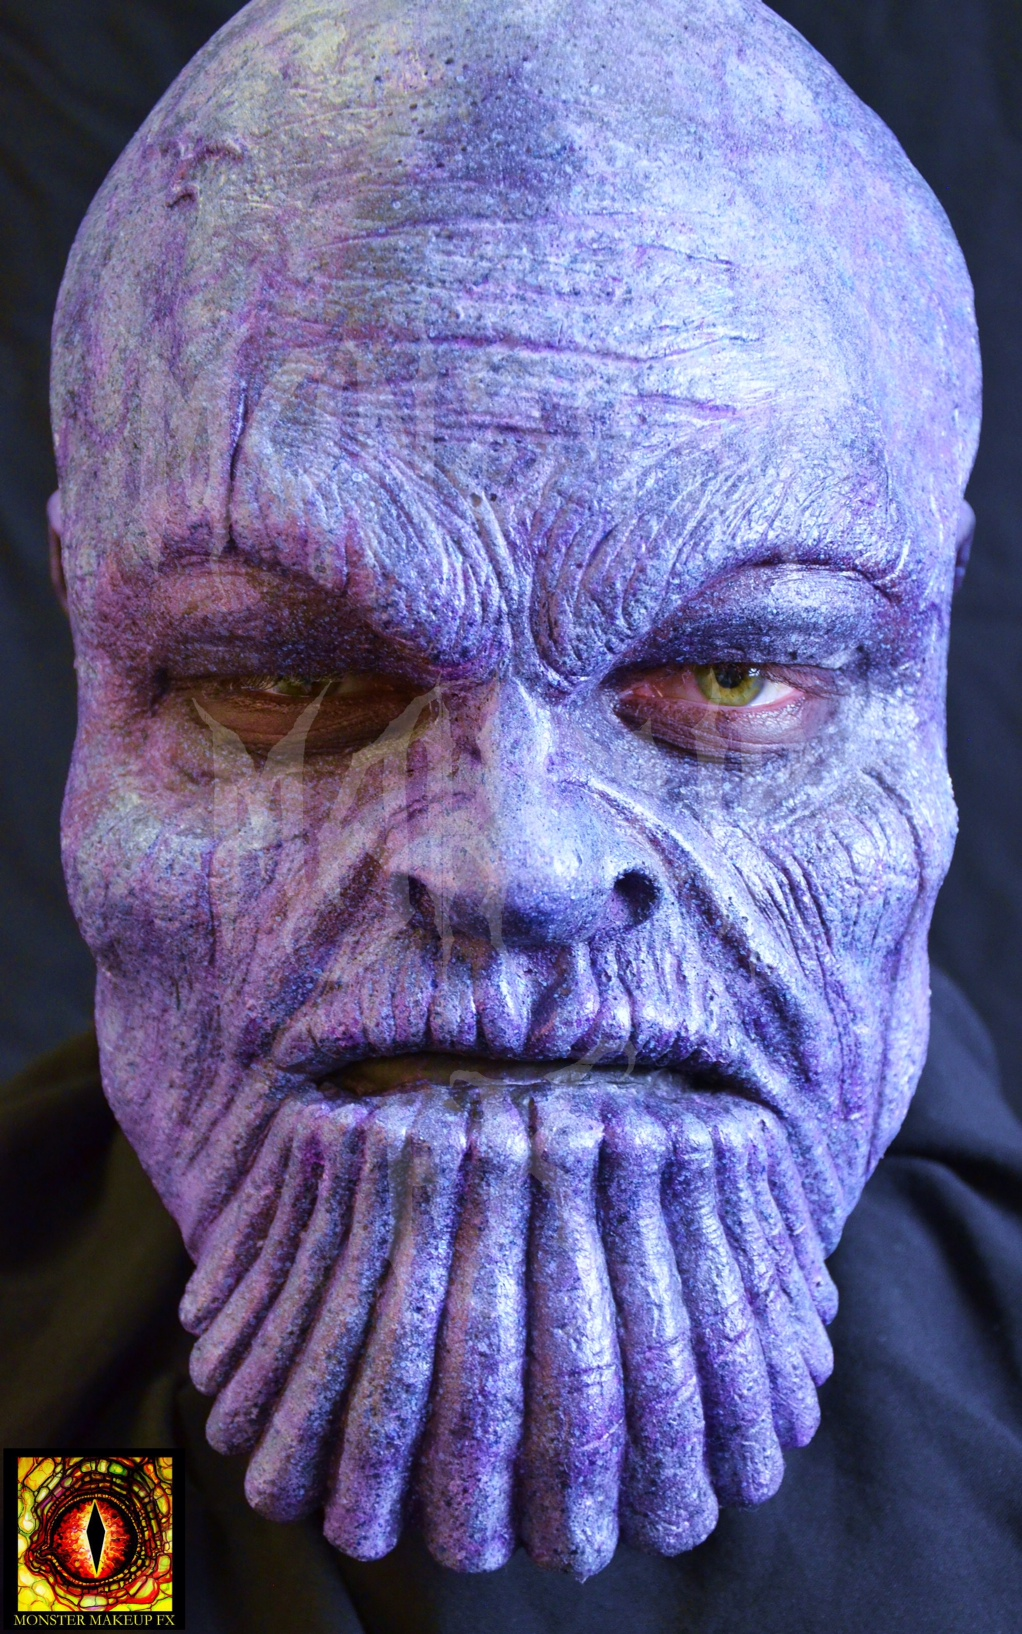 Thanos Head On Watermarked.jpg